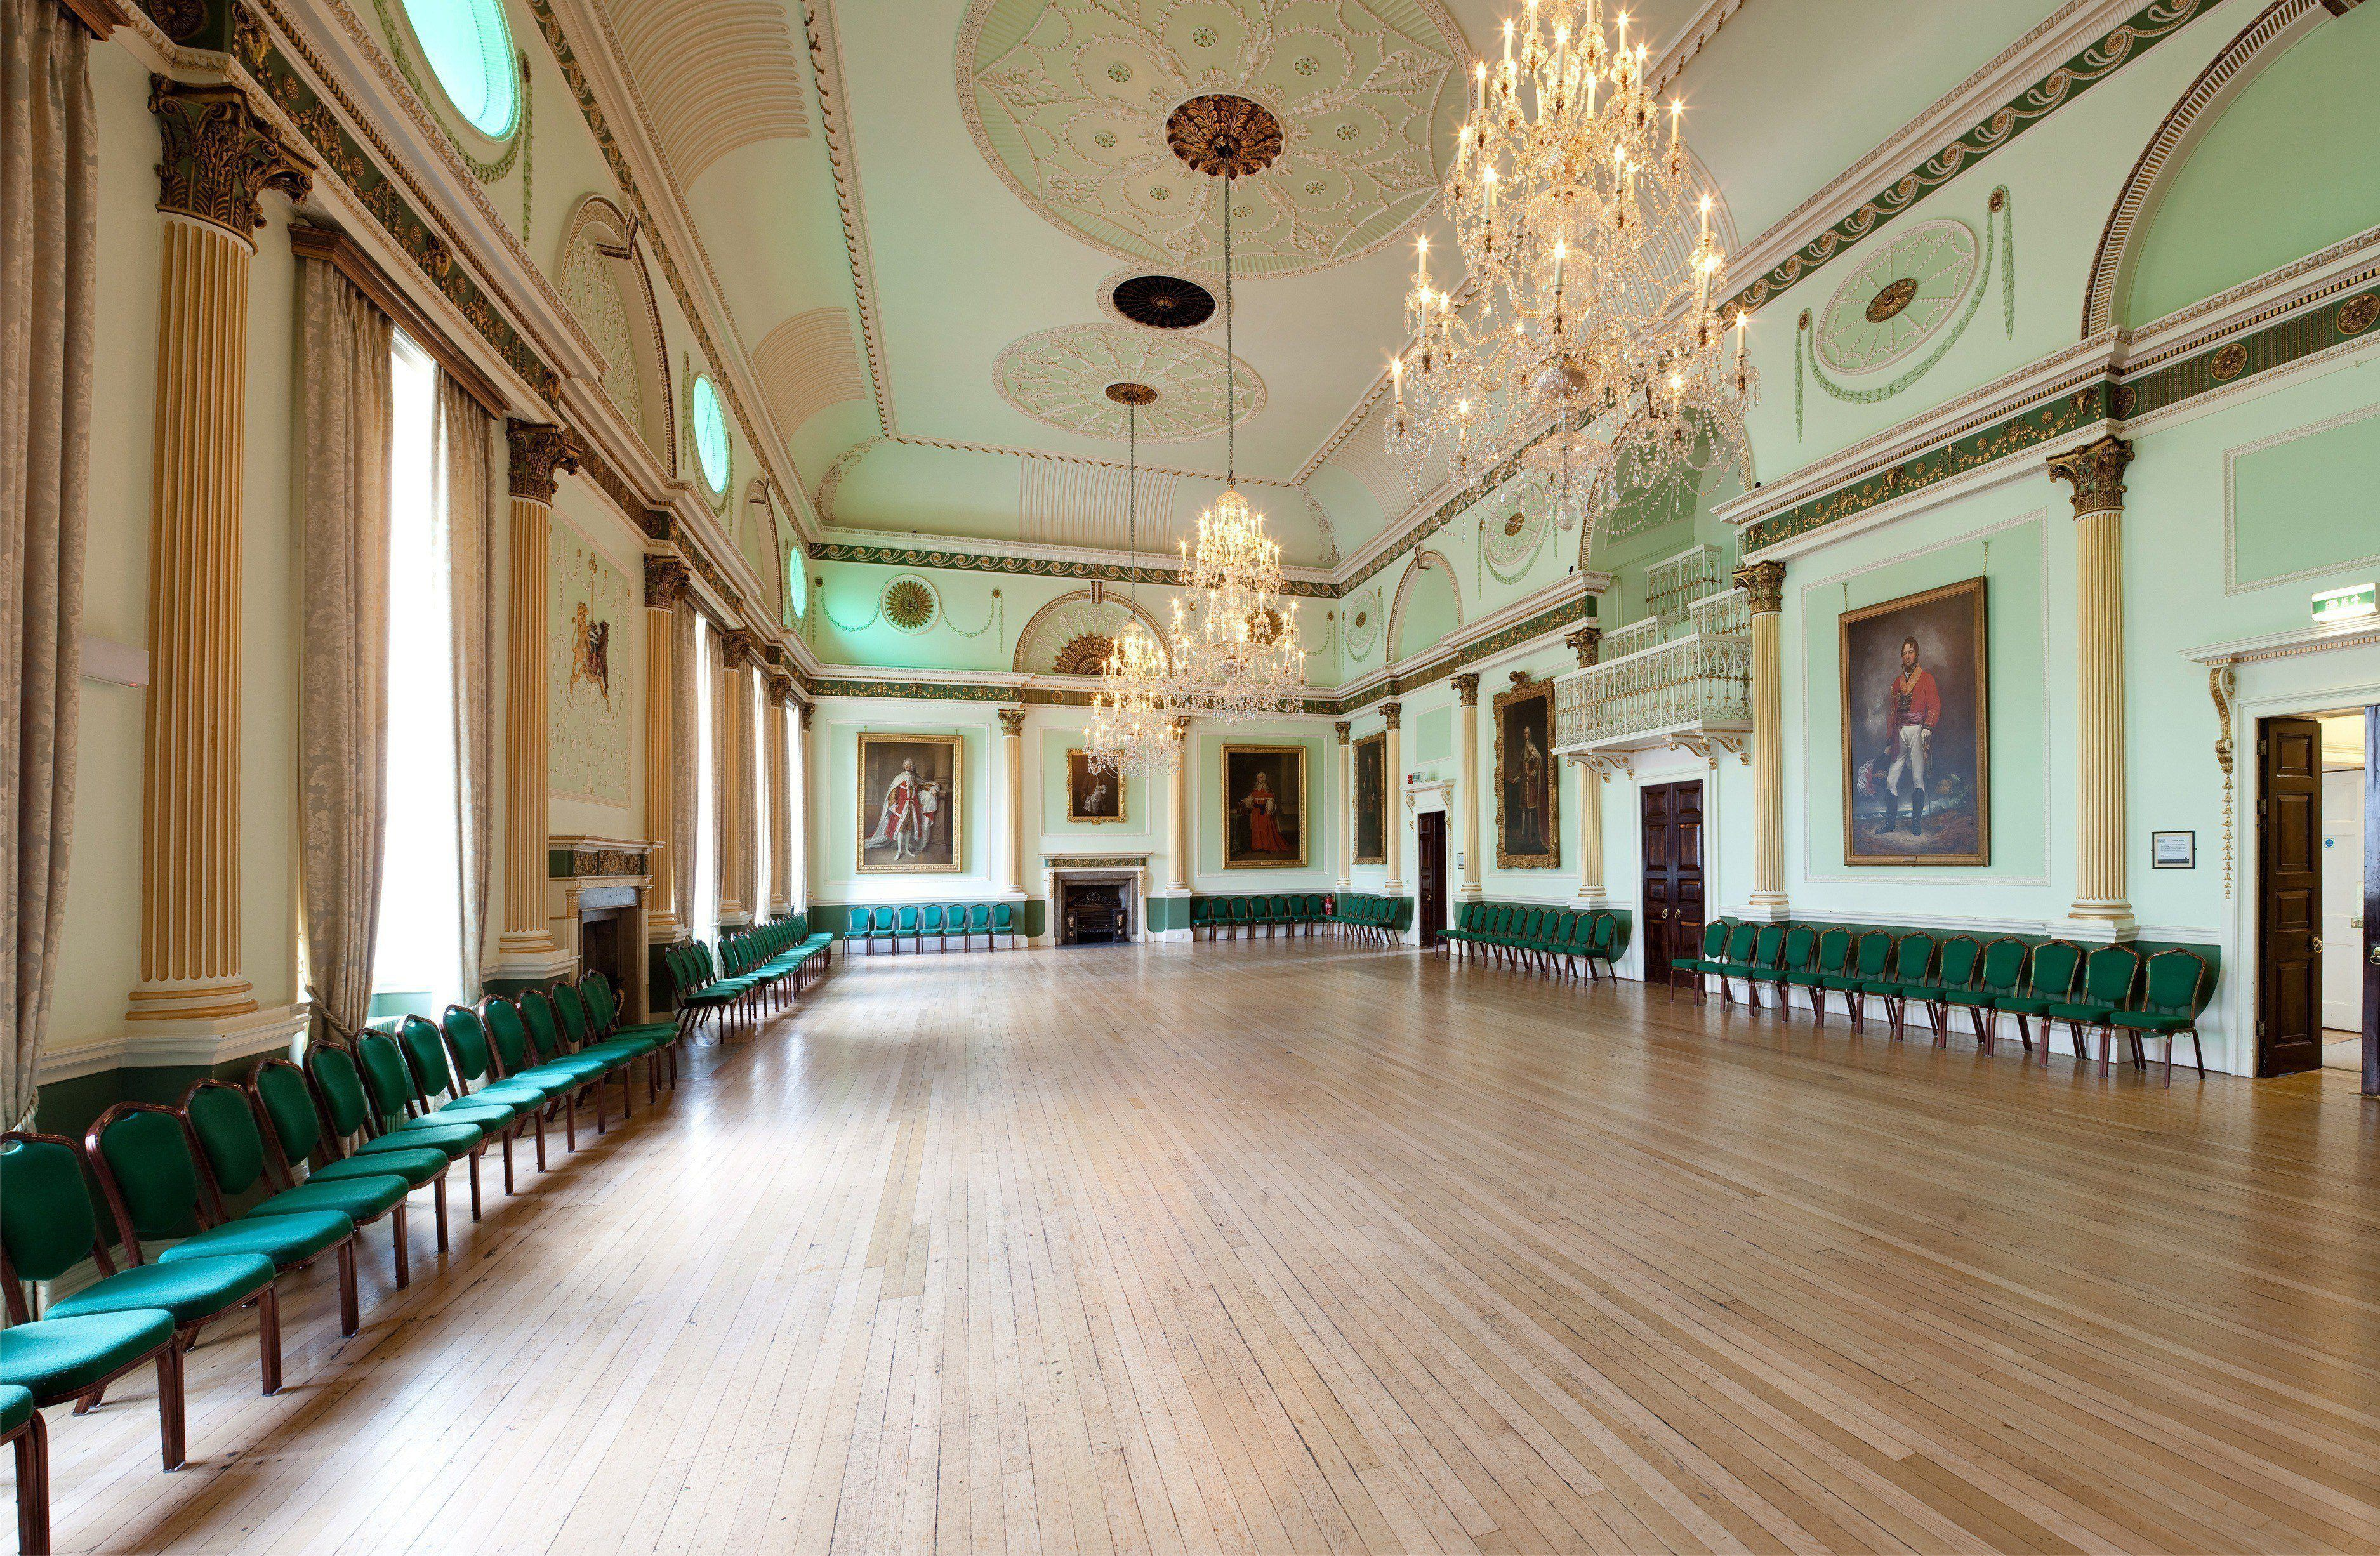 Partyvenuesuk Co Uk: Guildhall, A Stunning Venue For A Business Event Or